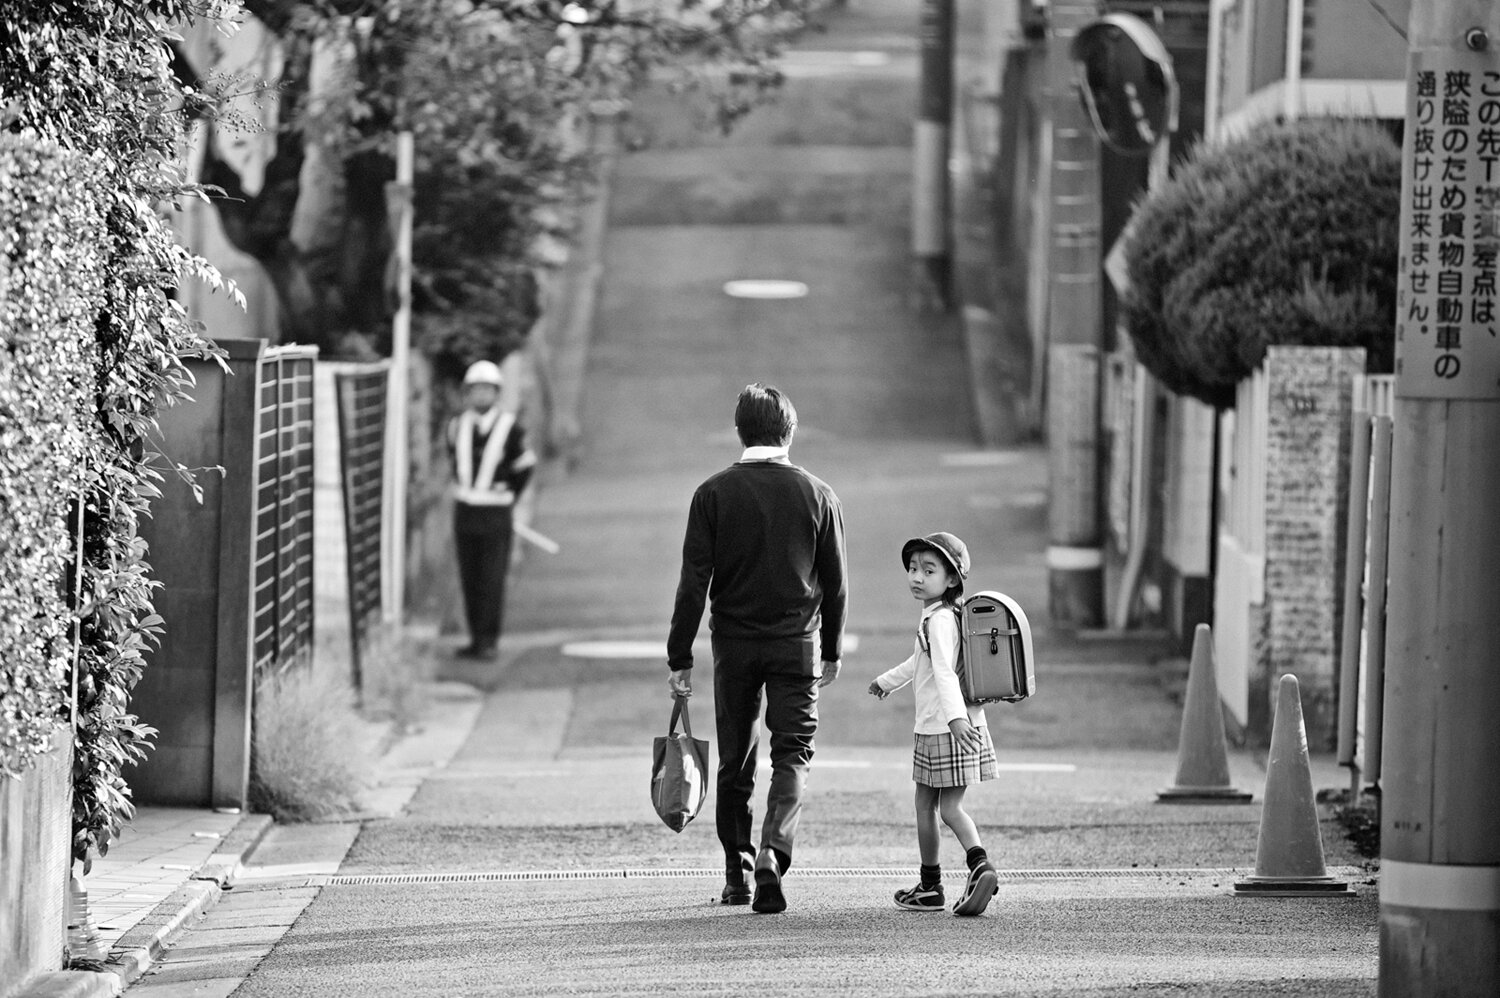 Walking Home, © Pak Han 2009. Published in The Japan Times